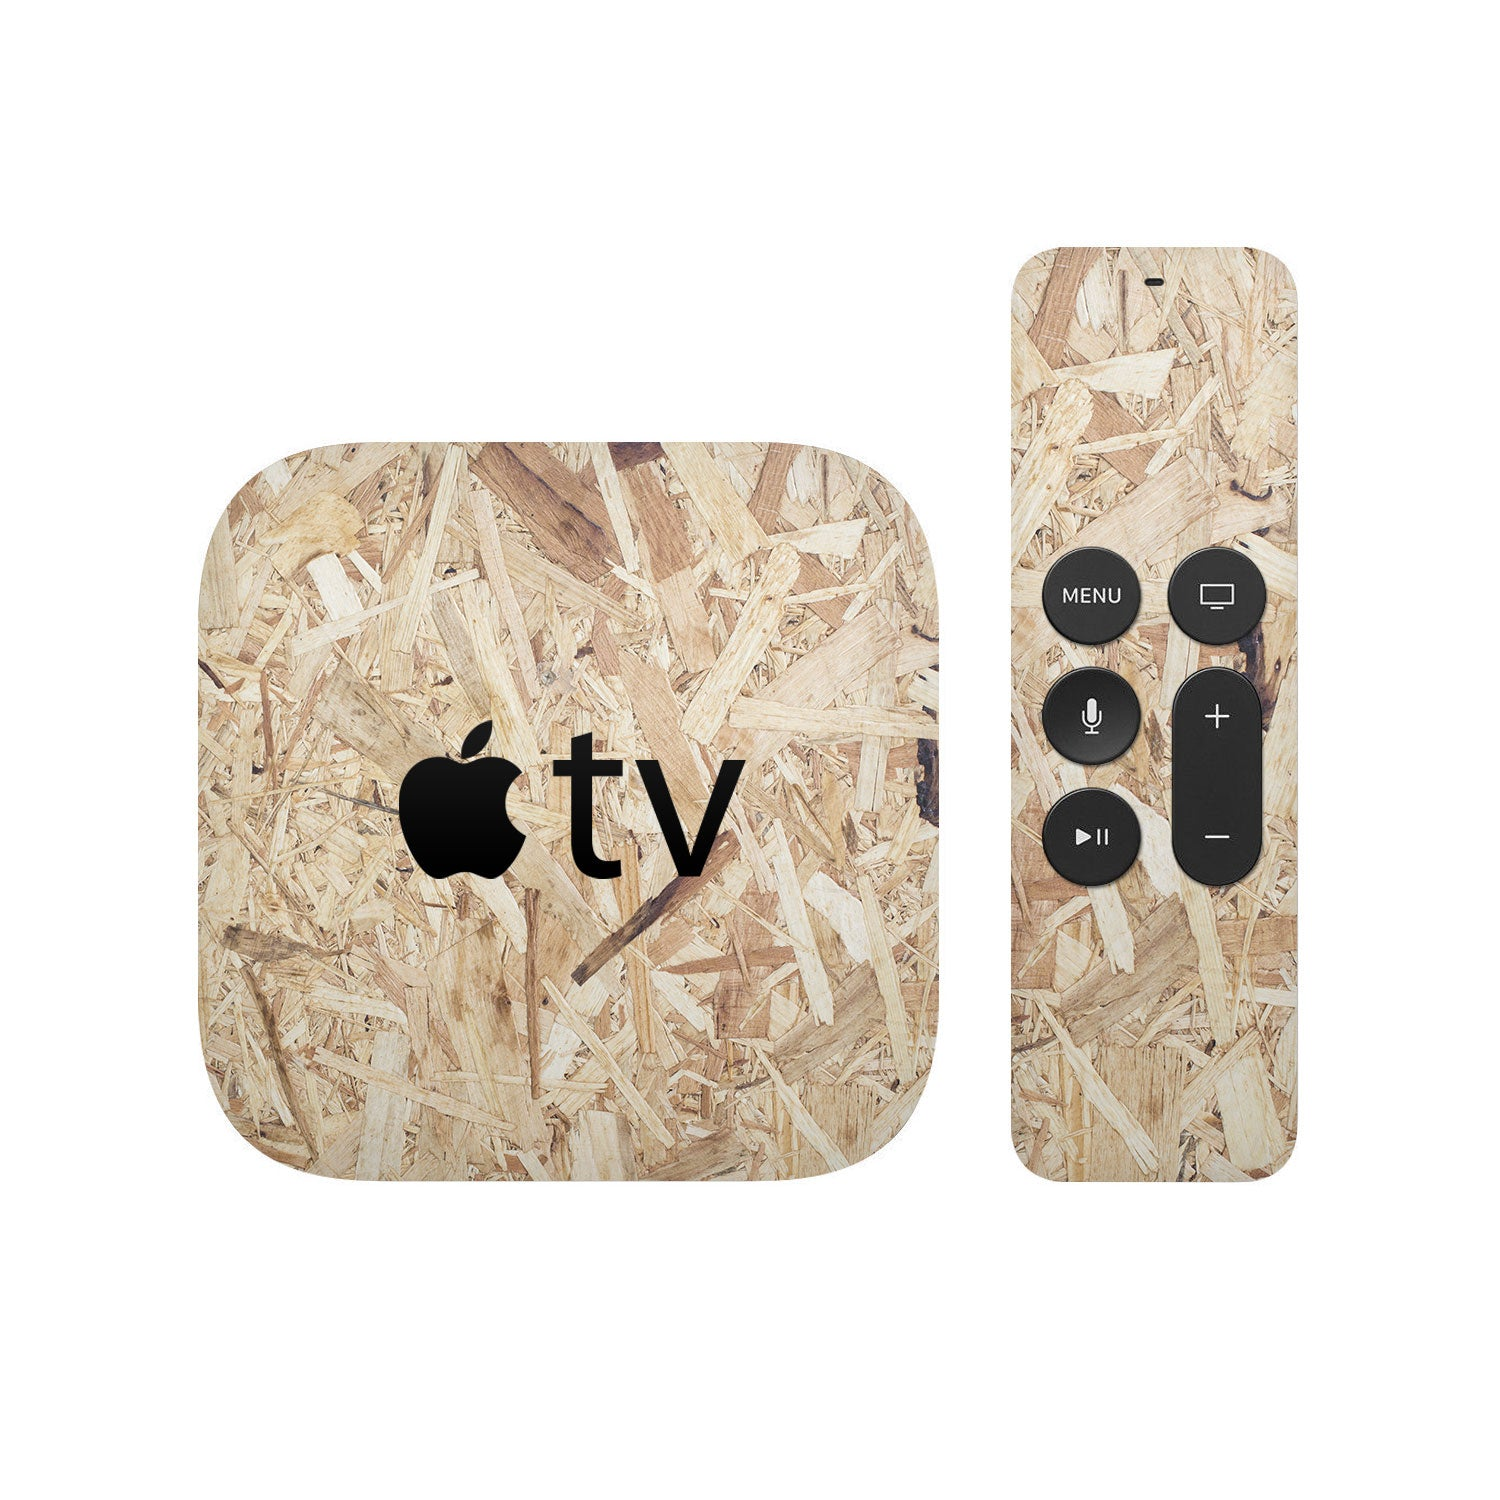 Plywood Apple TV 4th Generation